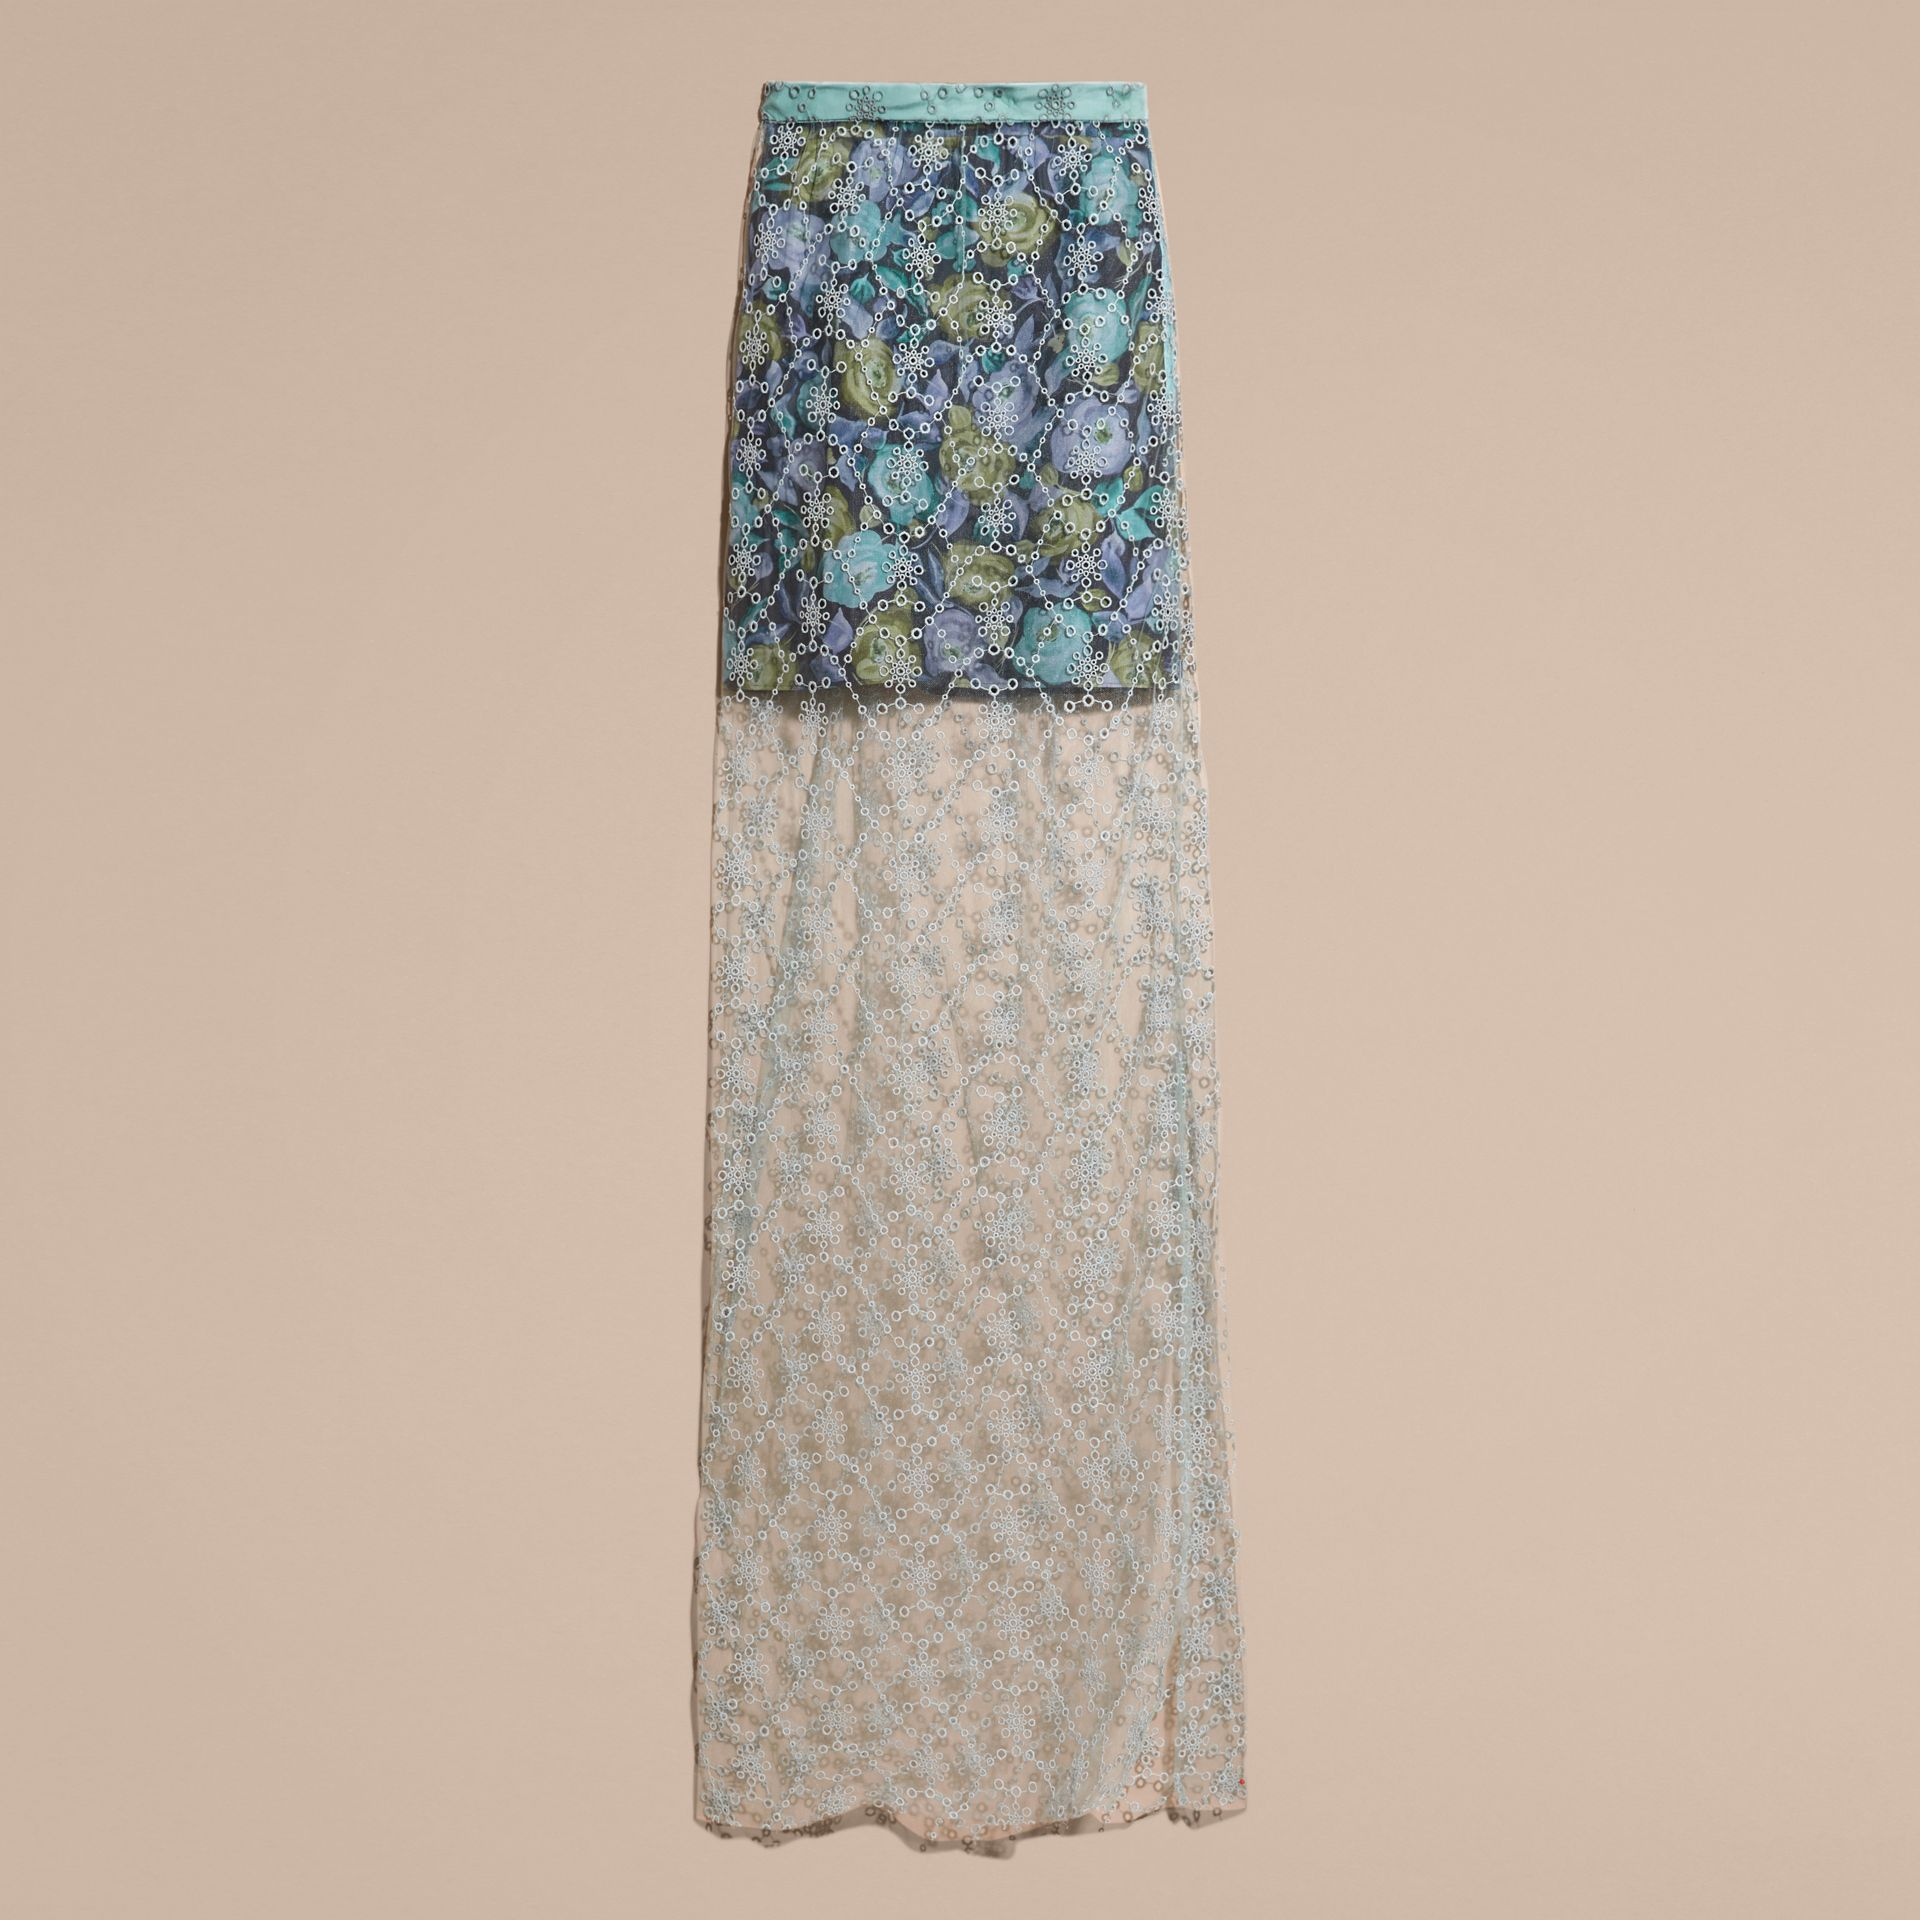 Aqua green Embroidered Tulle Column Skirt with Rose Print Lining - gallery image 4